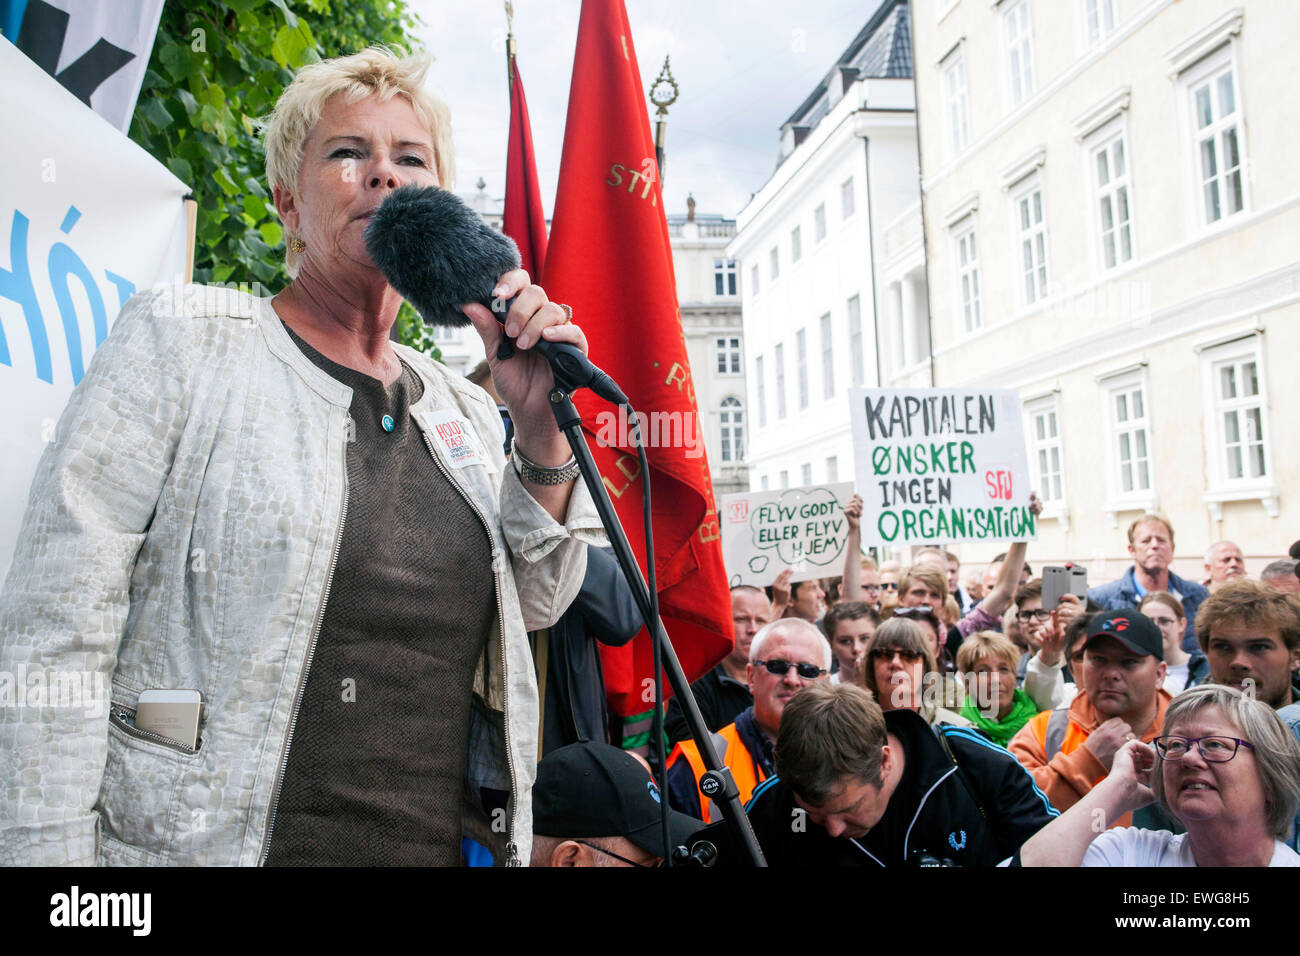 Copenhagen, Denmark, June 15th, 2015: Demonstration in front of the Danish Labour Court, which begins it's final - Stock Image